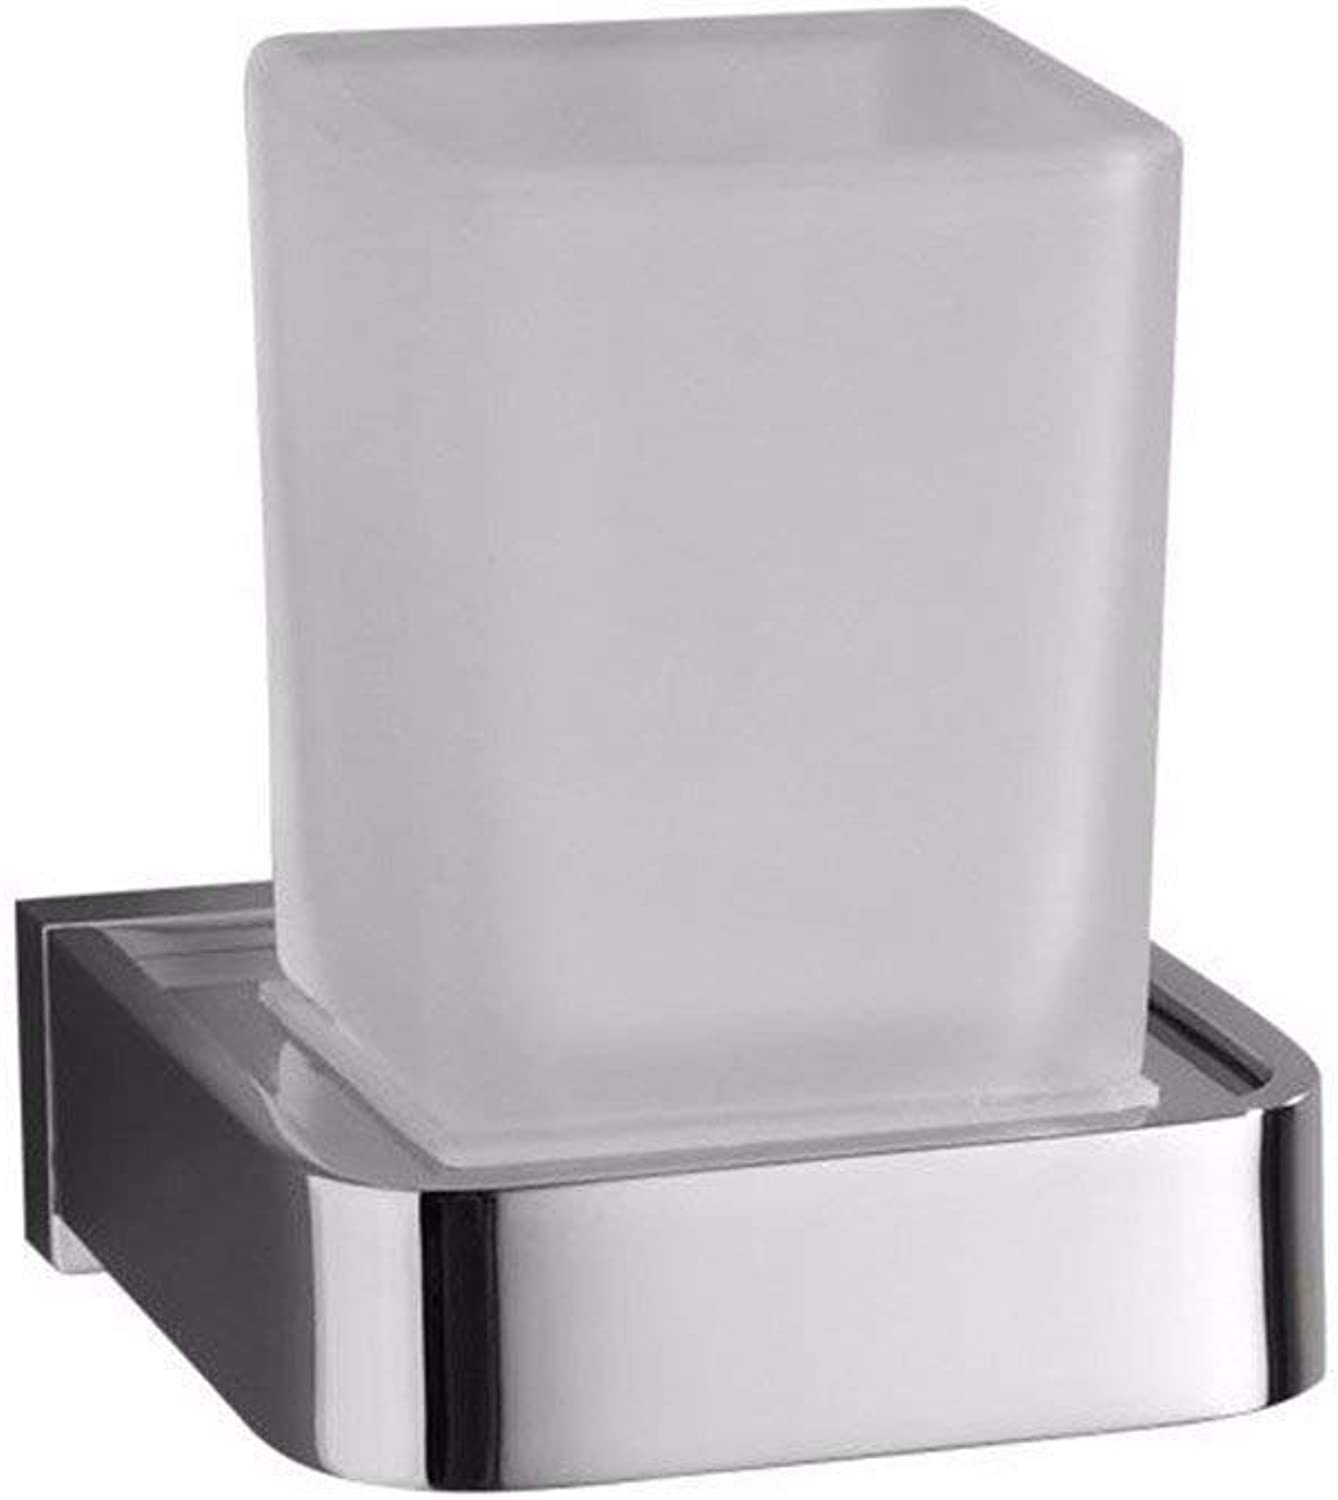 All Europeans Chromium Copper Accessories of Bathroom Respond to Hook Suspension for Cup-Holder,a Toothbrush only Cup